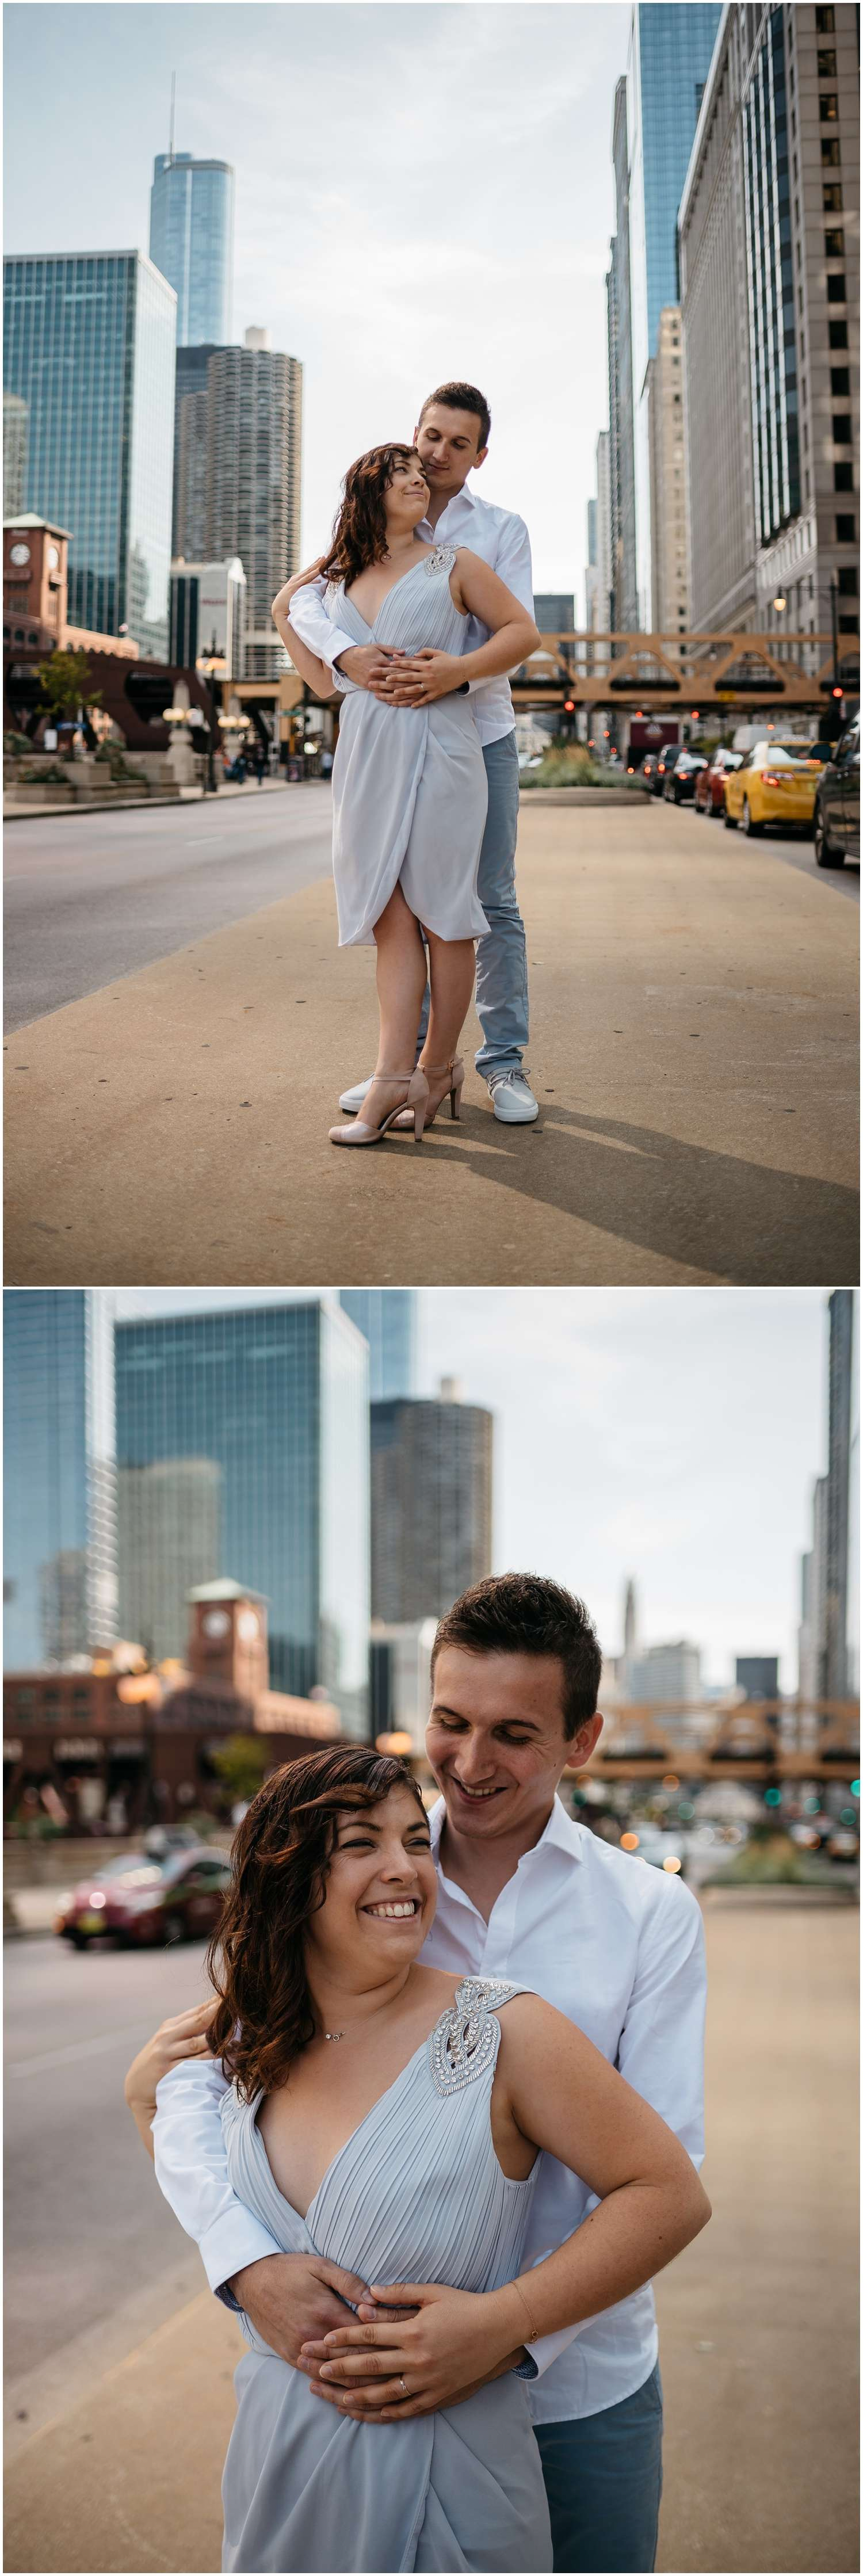 chicago, photographer, photography, couples session, couple, engagement, session, illinois, engagement session, lifestyle, documentary, photojournalistic, photojournalism, natural, candid, wisconsin, utah, michigan, colorado, chicagoland, portrait, unposed, elopement, elope, emopement photographer, chicago elopement, illinois elopement, anniversary, downtown chicago, riverwalk, board of trade, financial district, france, french